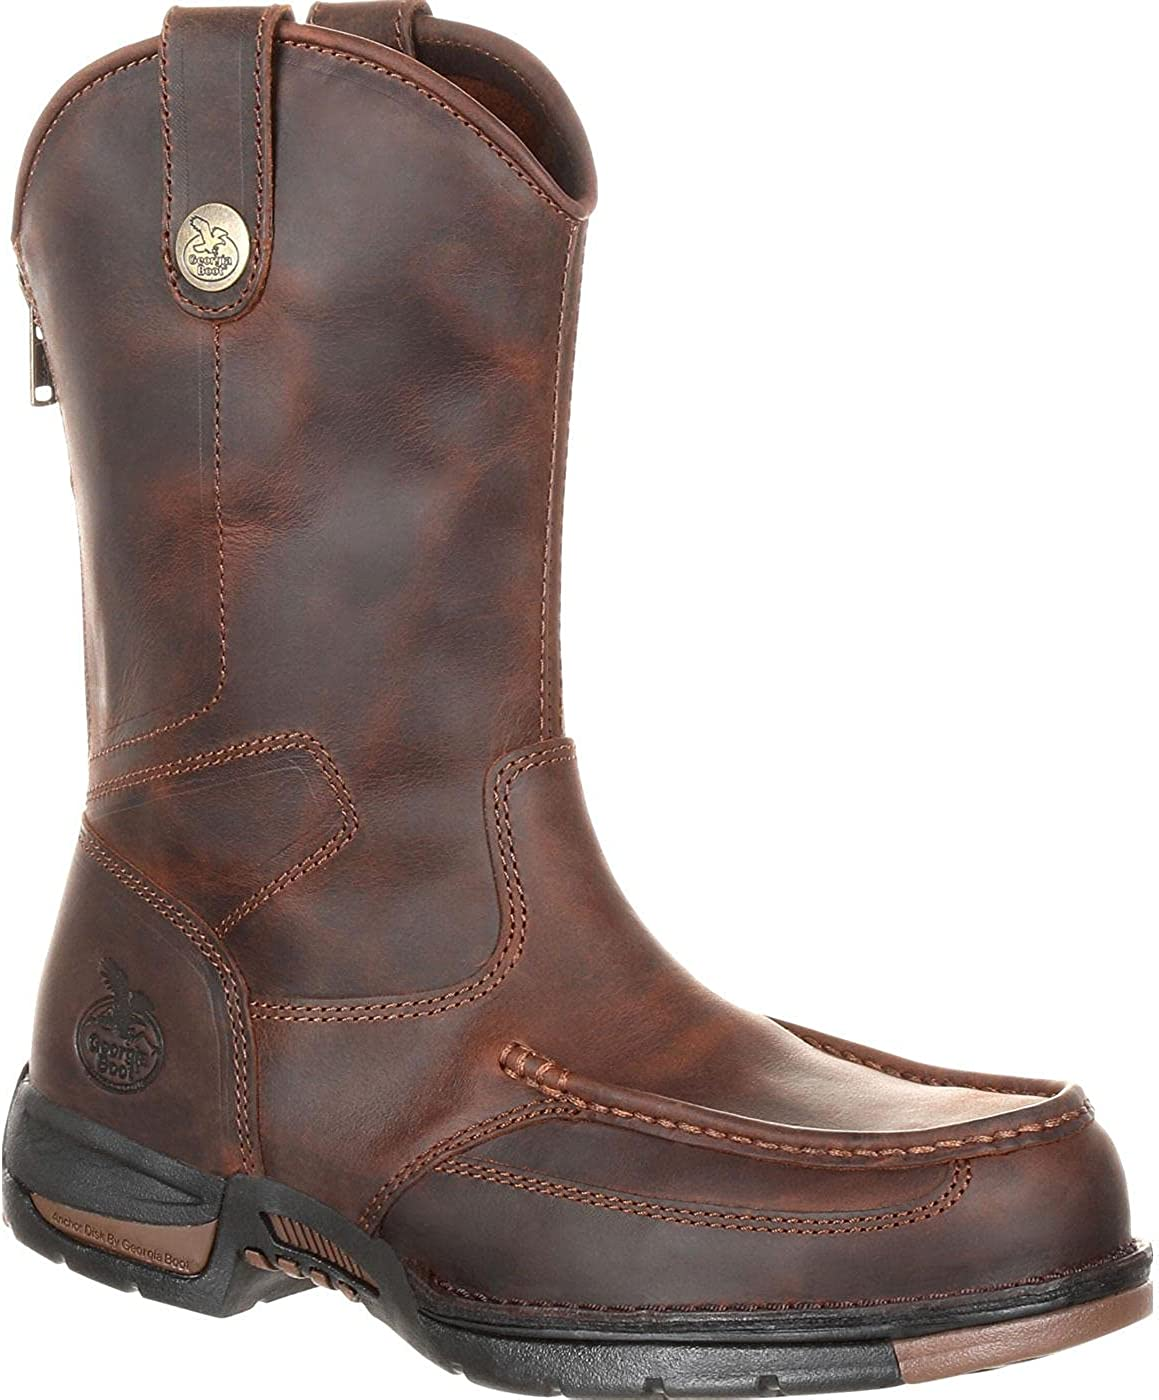 Georgia Boot Phoenix Mall Athens Pull-On Work Free Shipping Cheap Bargain Gift